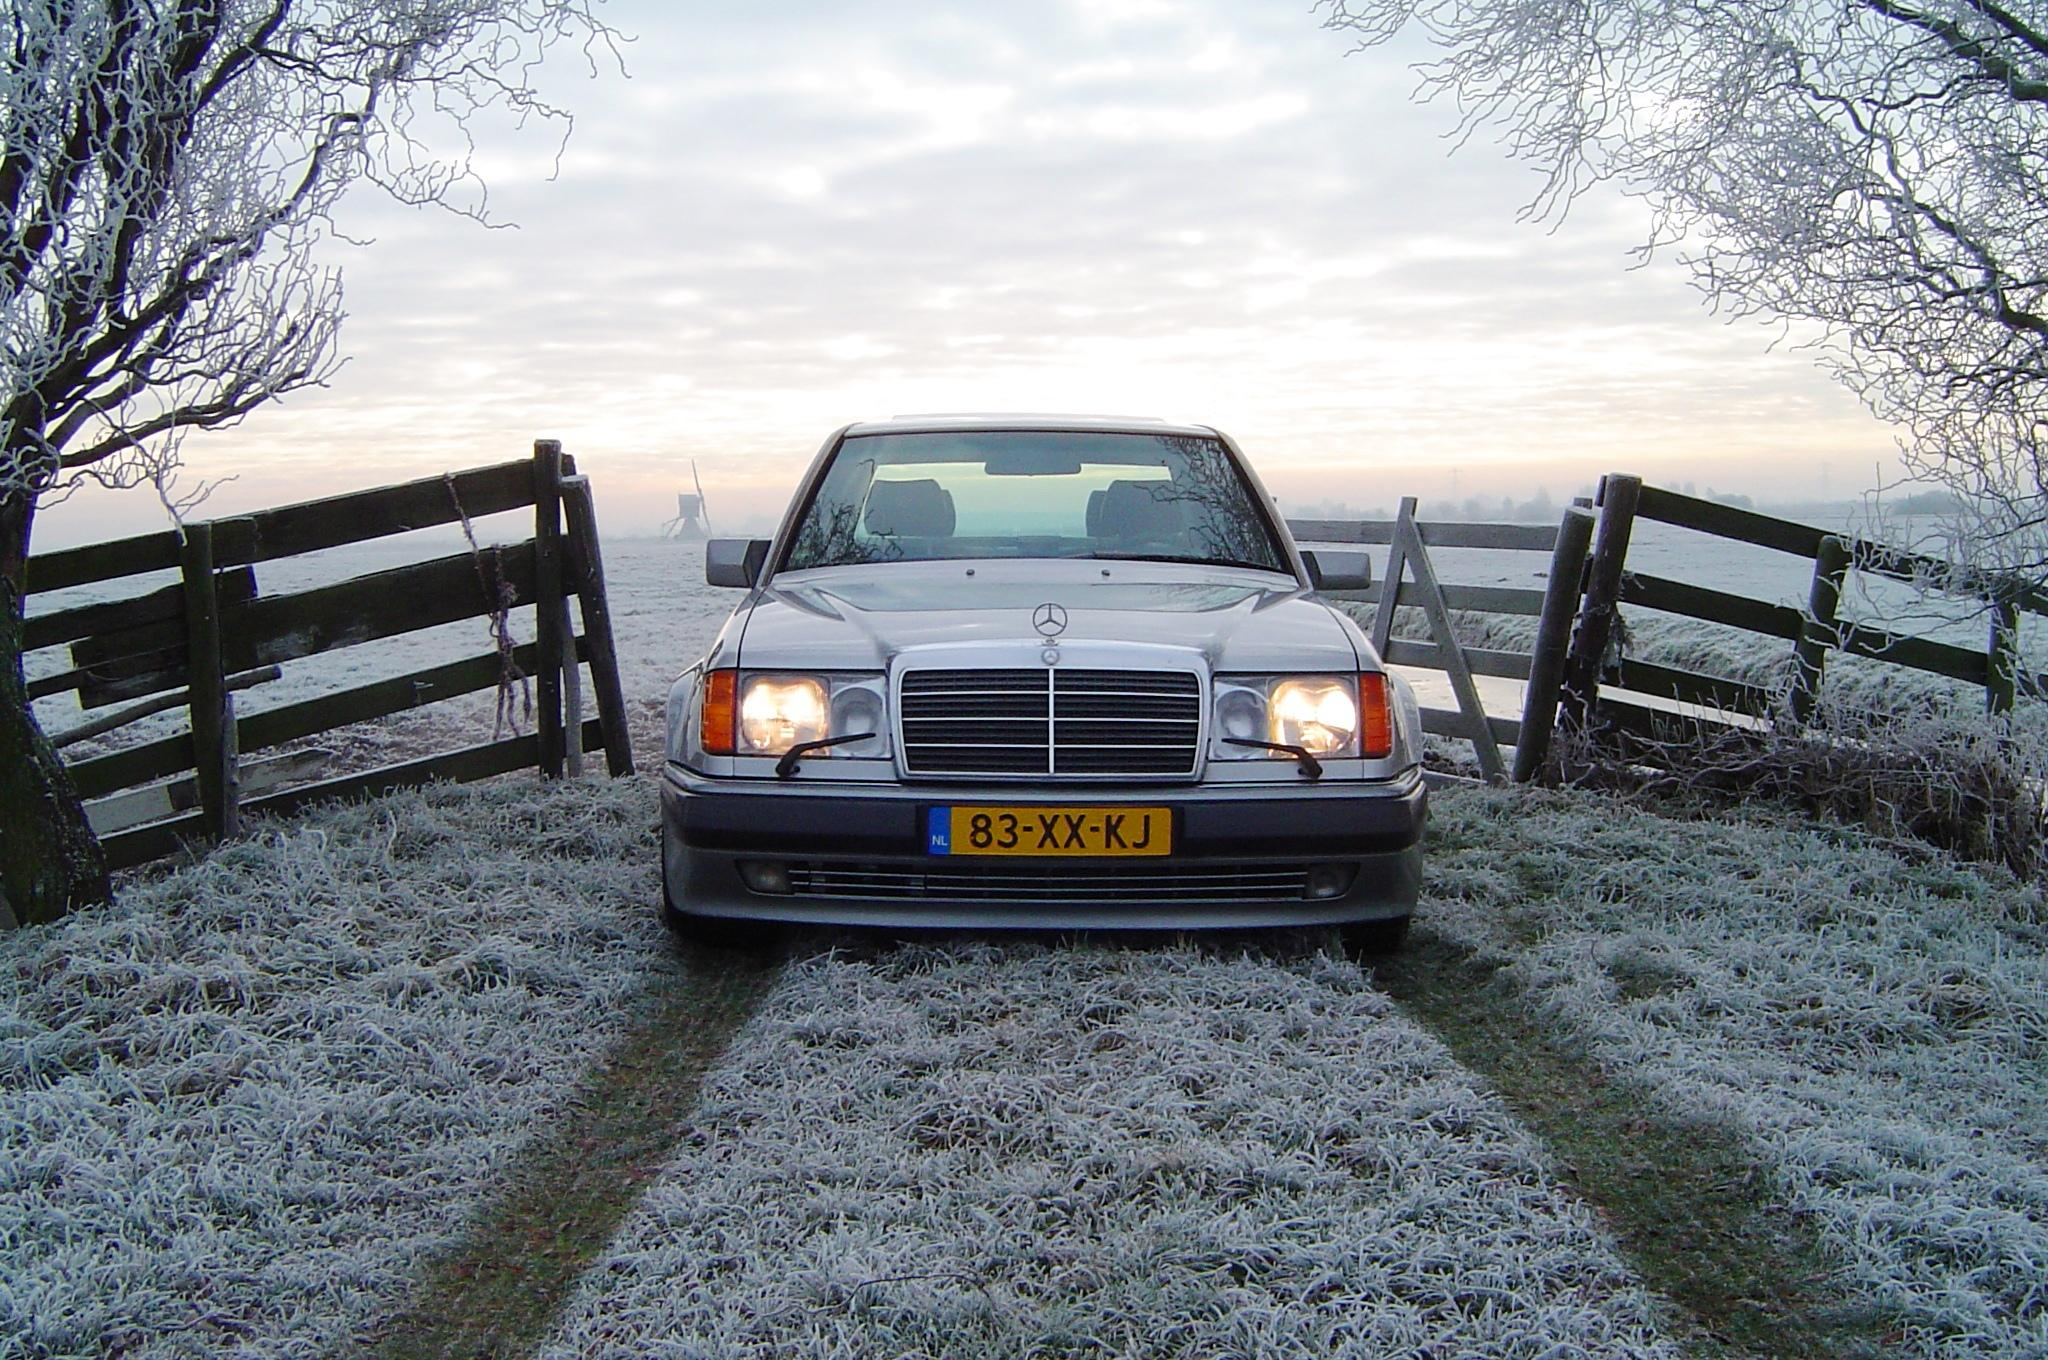 2nd Hand Mercedes Benz >> car of the day. 500E | IEDEI